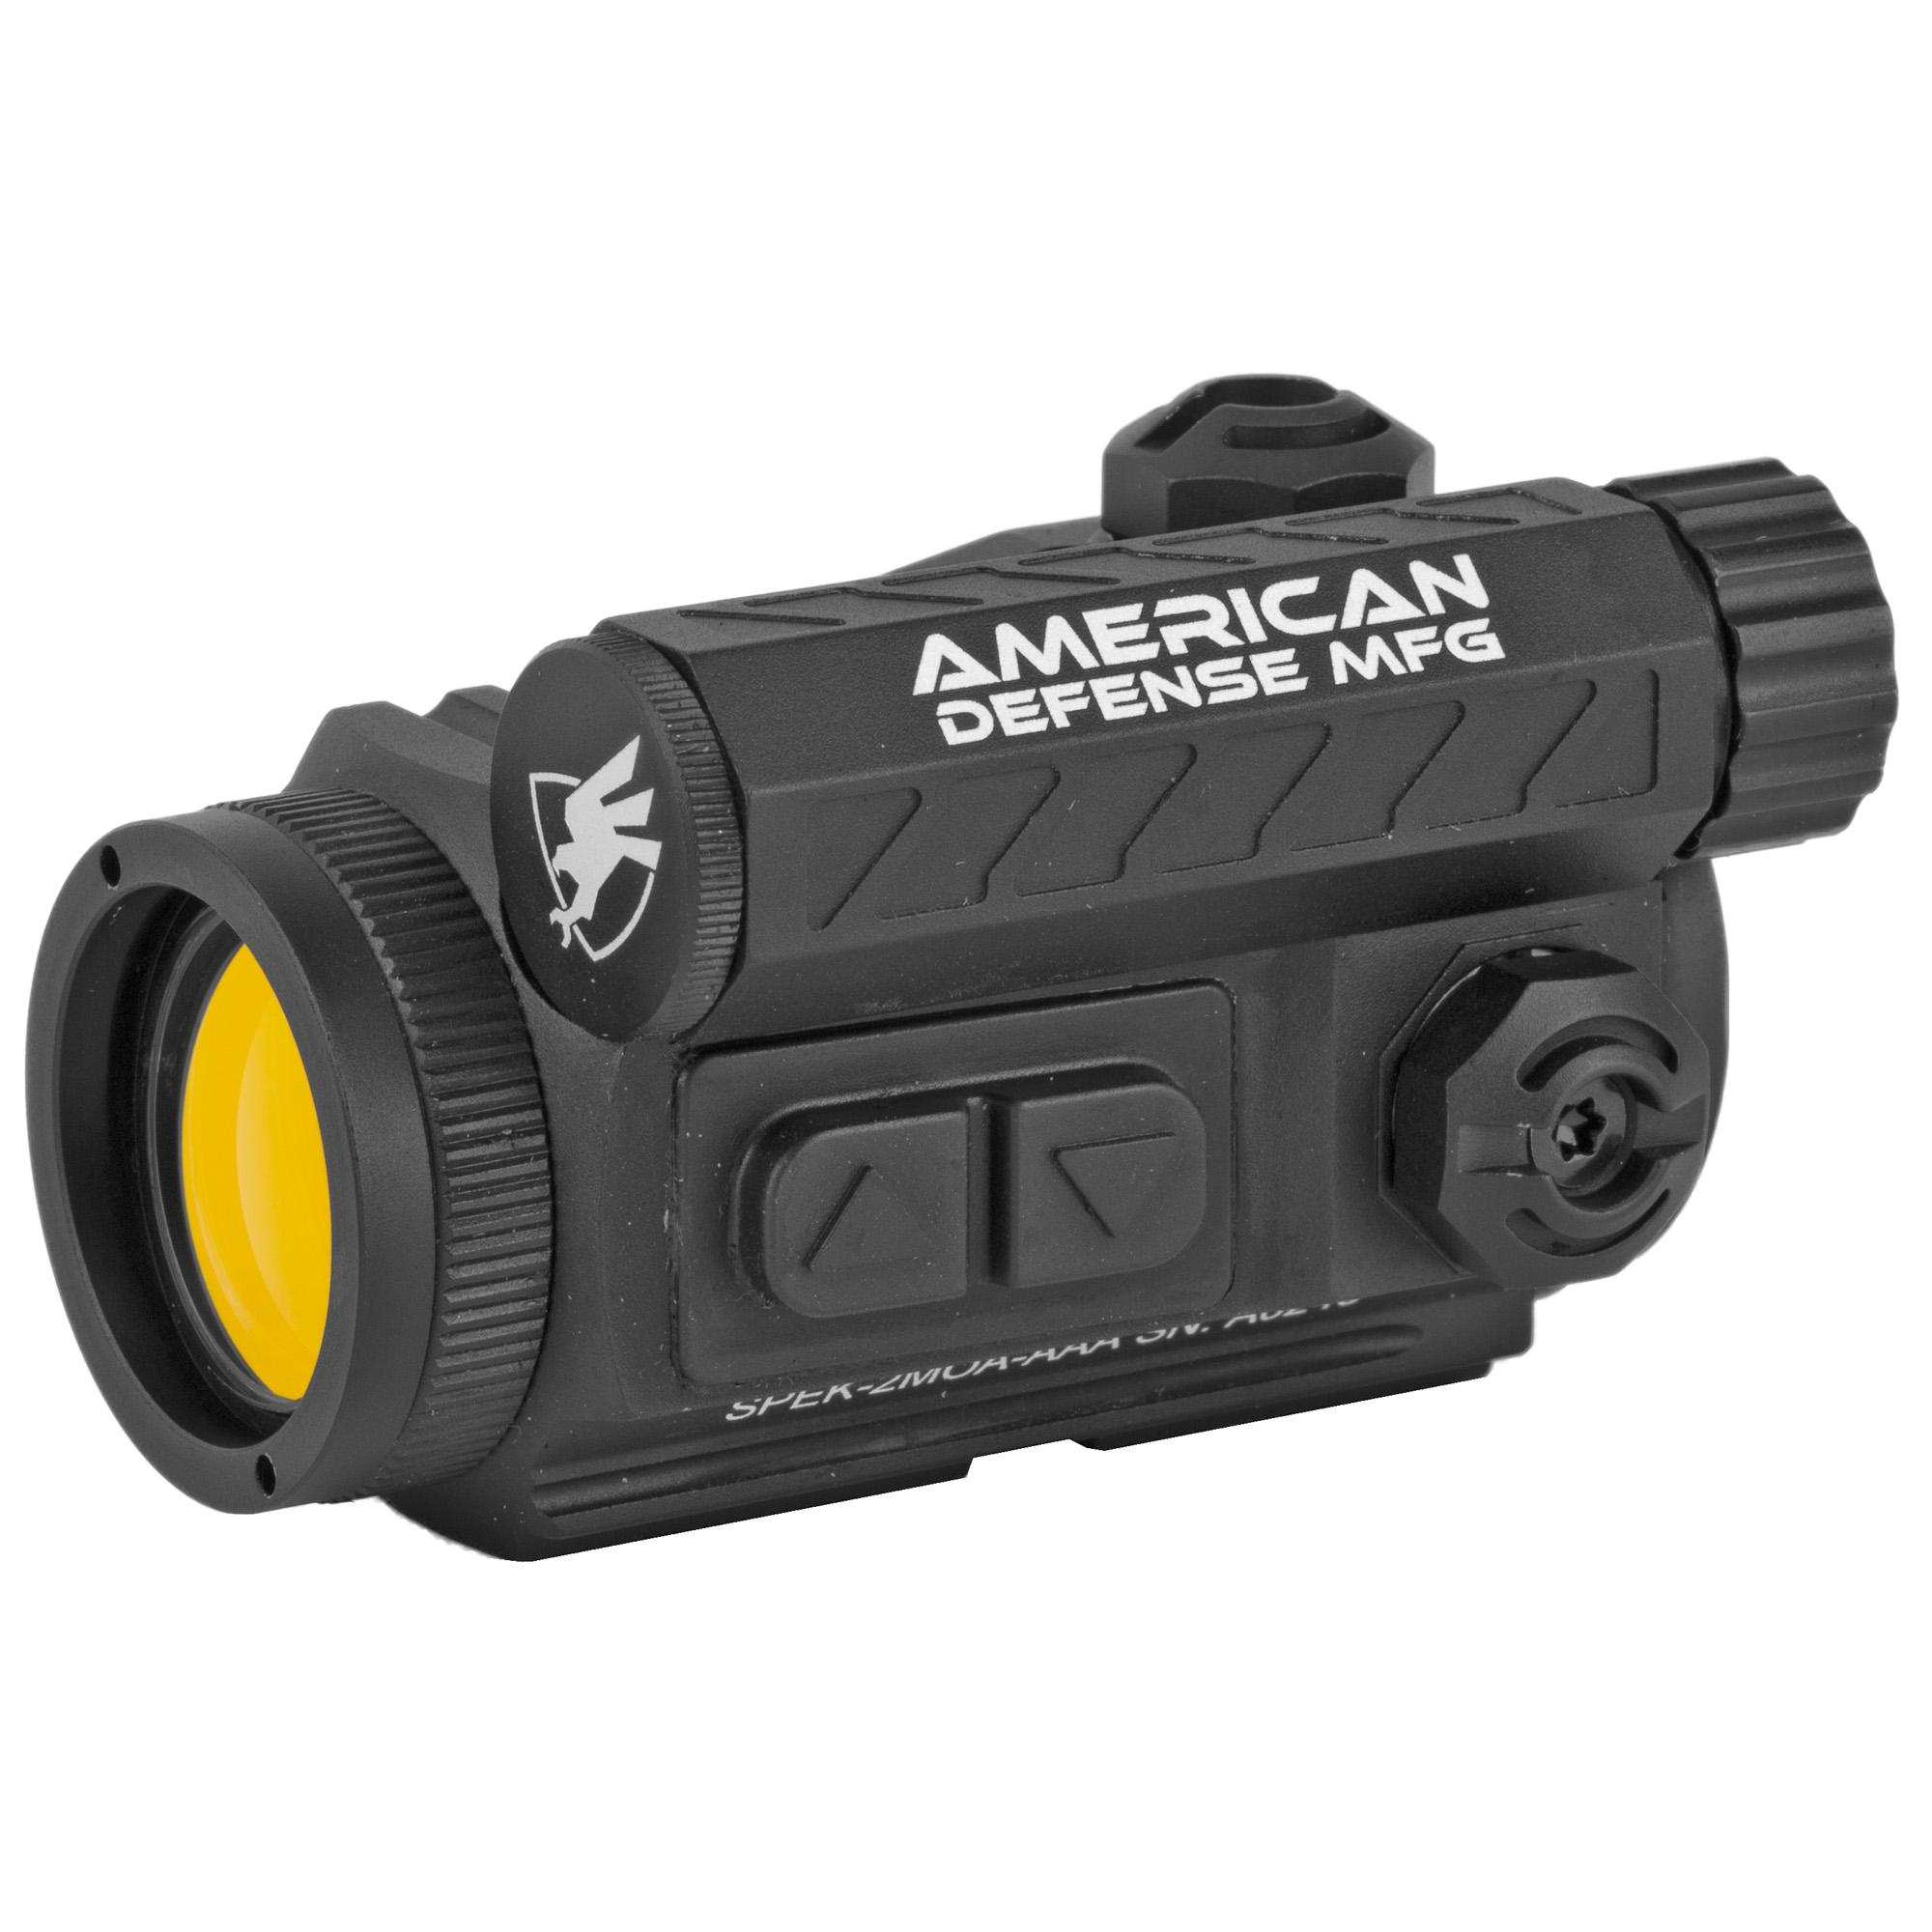 American Defense Mfg. American Defense Mfg. Spek Red Dot Lower-1/3 2moa